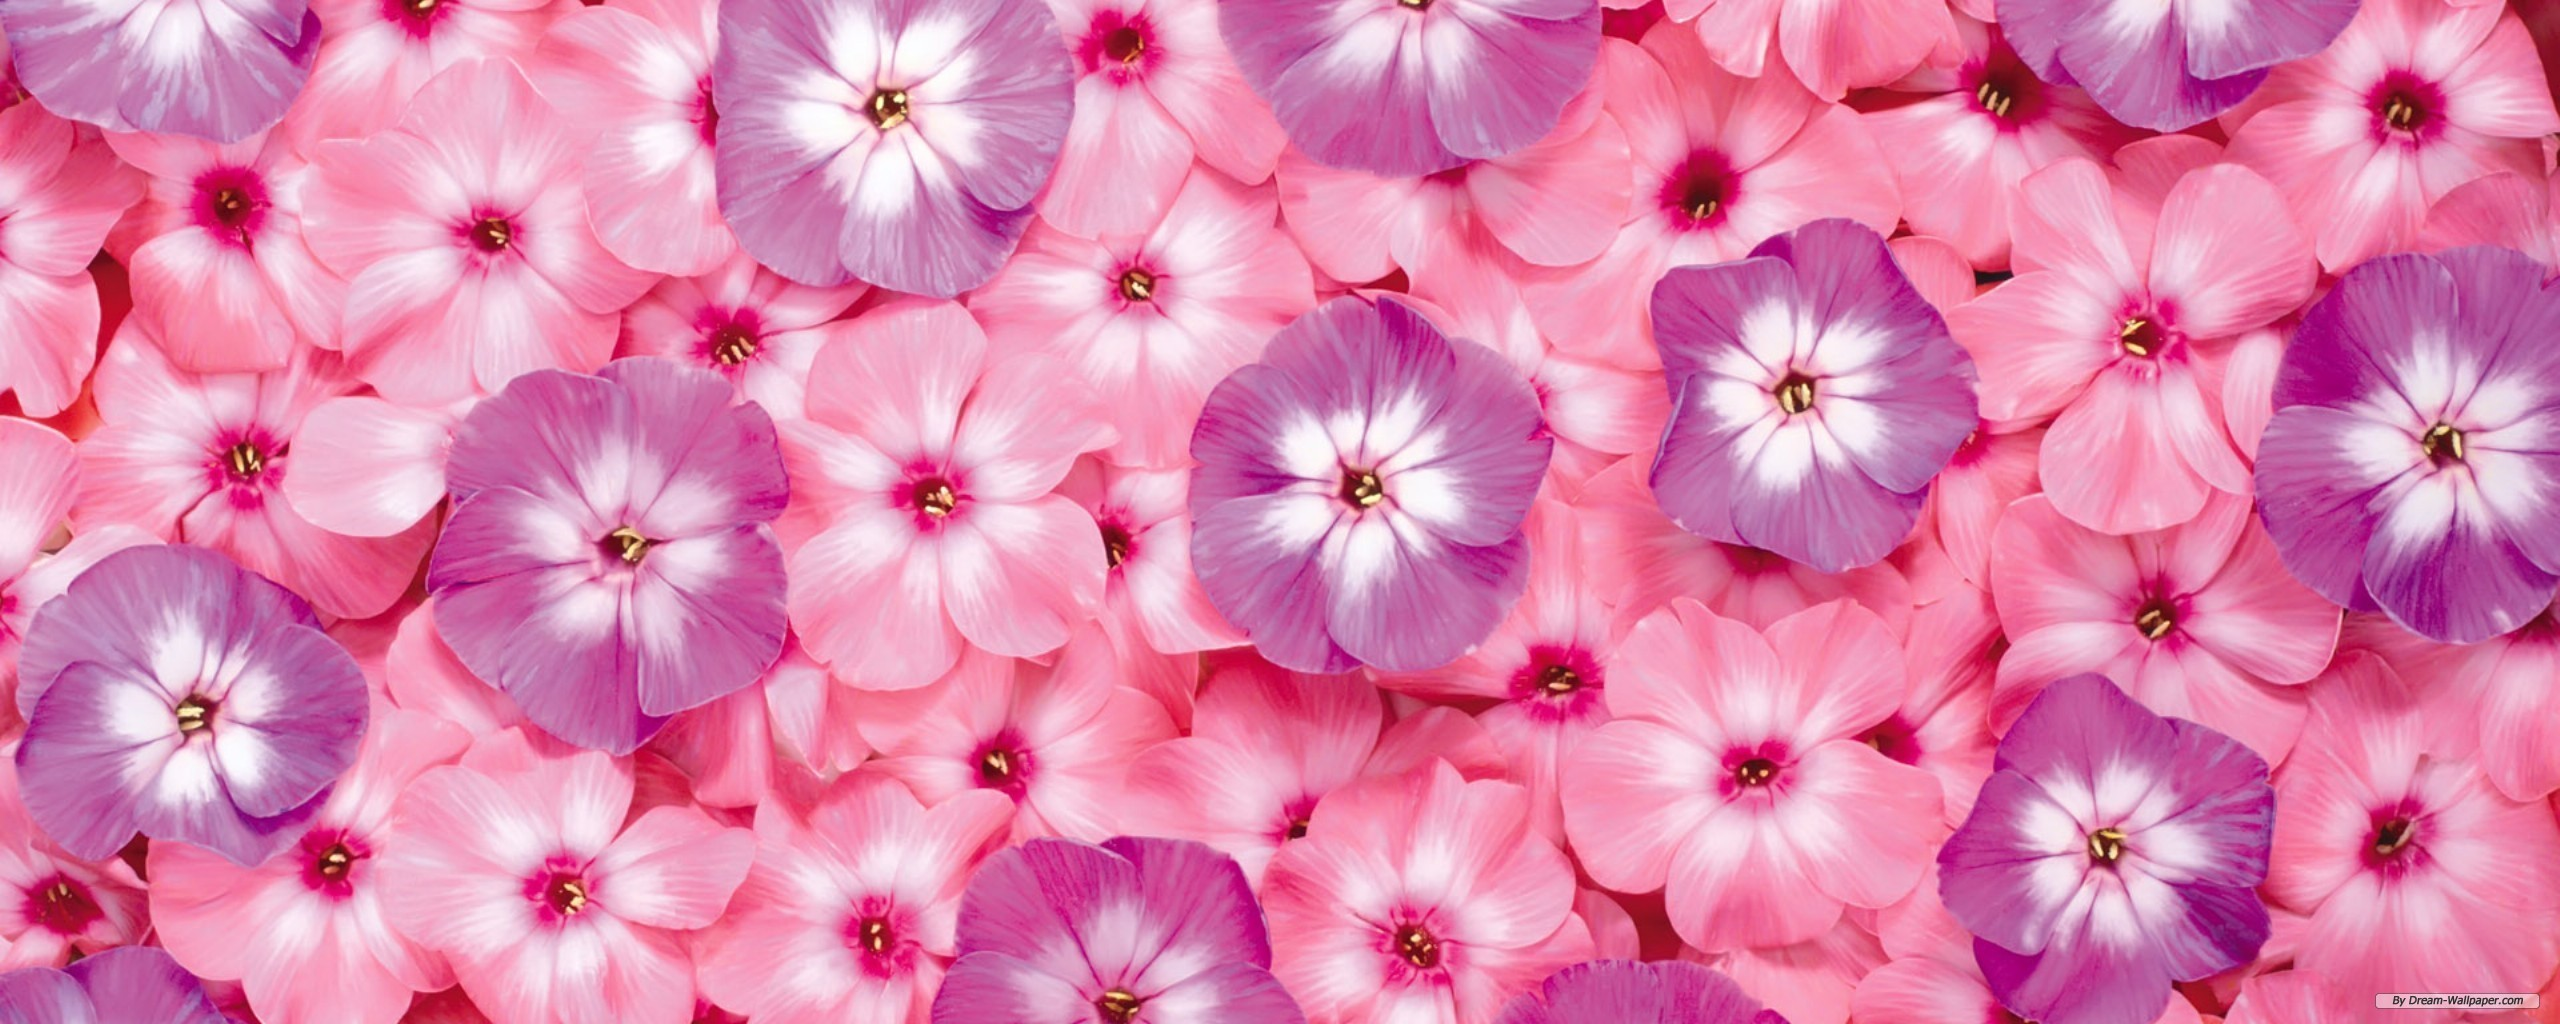 Tumblr Flower Backgrounds wallpaper 1920x1200 23676 2560x1024